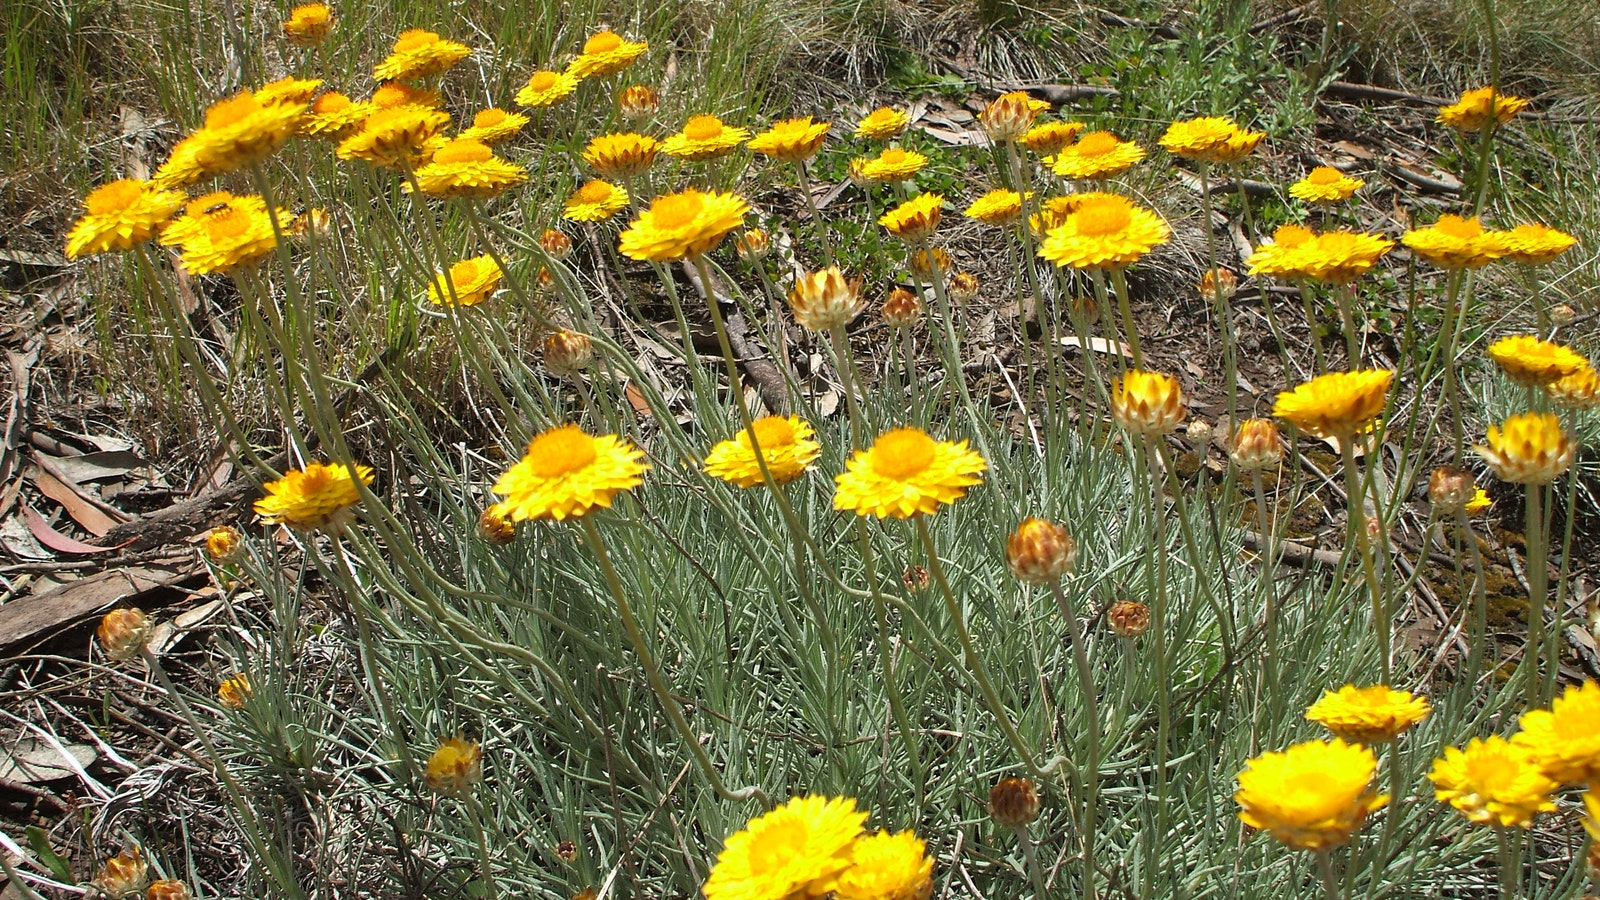 Spring wildflowers, golden everlasting daisy